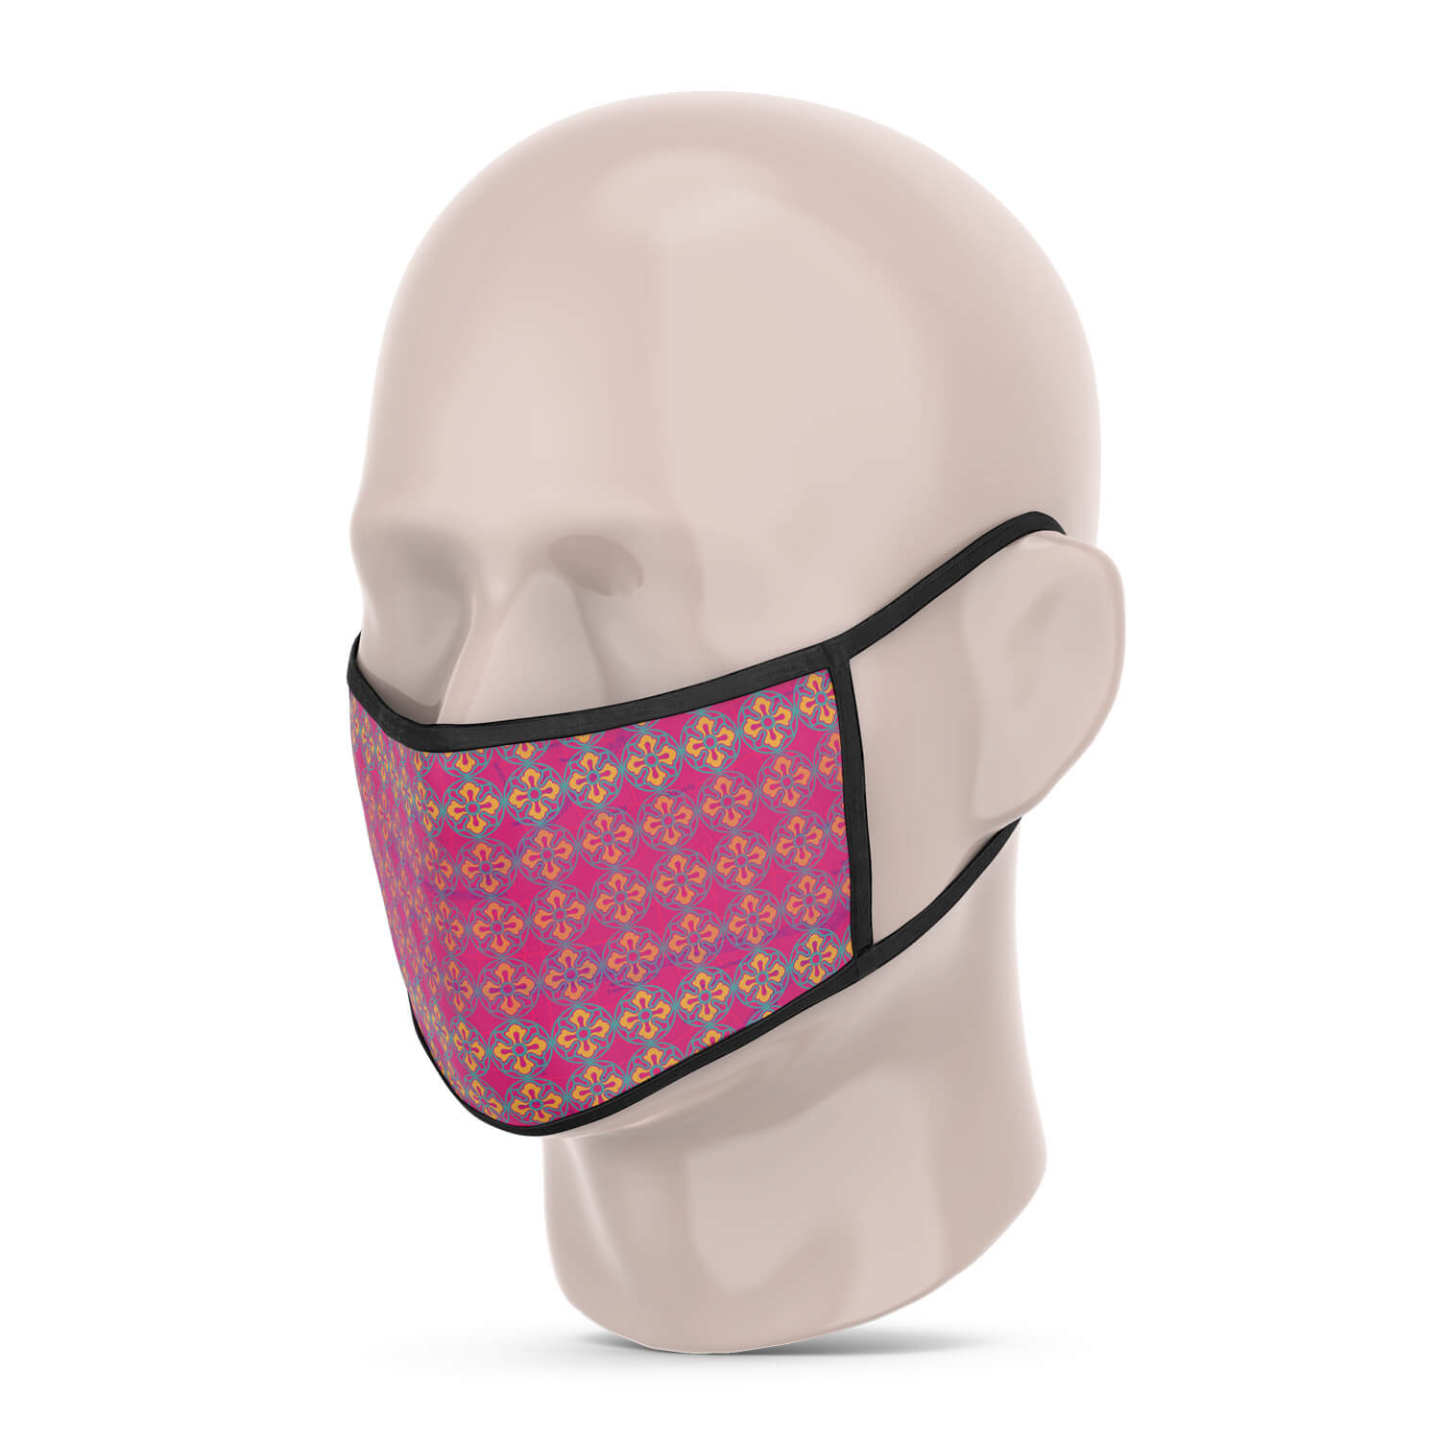 3 Layer Printed Protective Face Mask - Pack of 3 Pink-Dark Brown-Brown